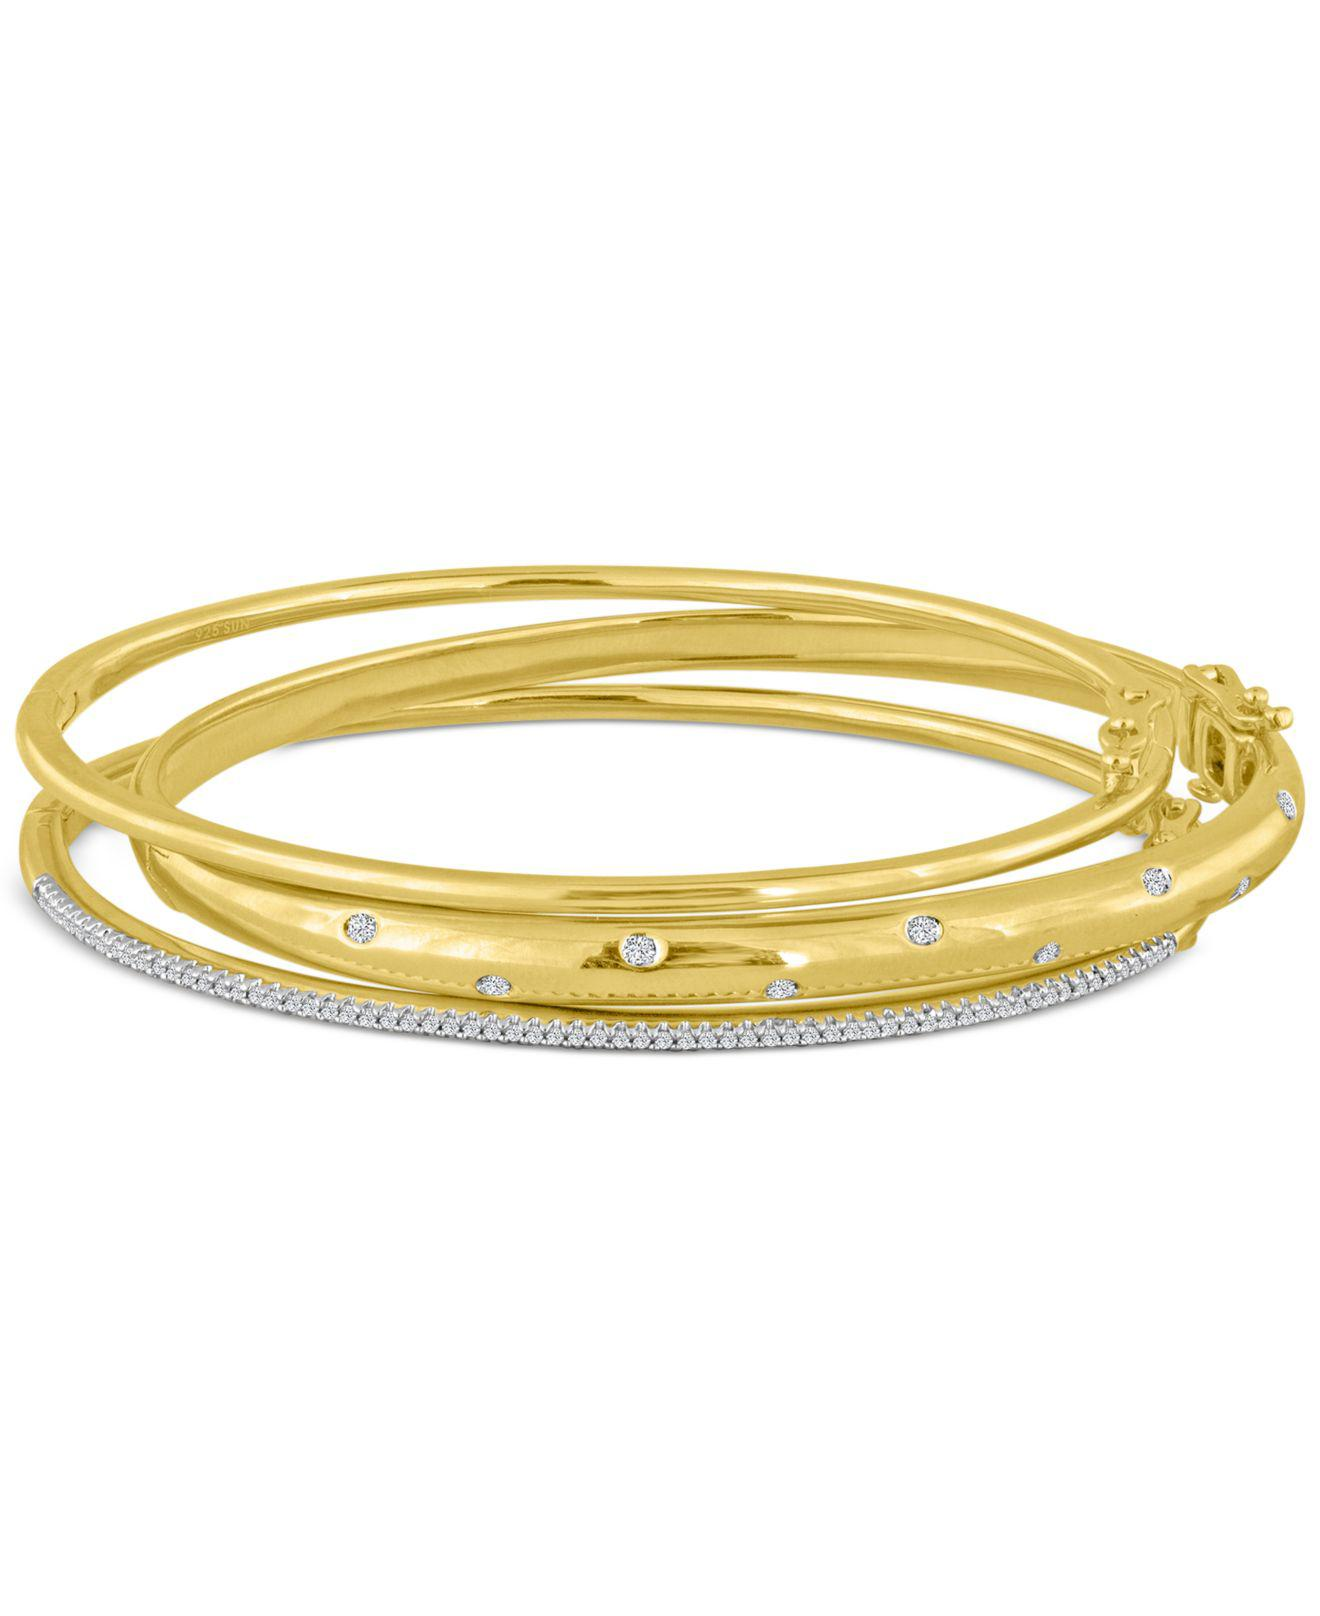 brand in lyst normal product brands gallery bracelet jewelry bangle and cuff gold lucky tone bangles stone metallic